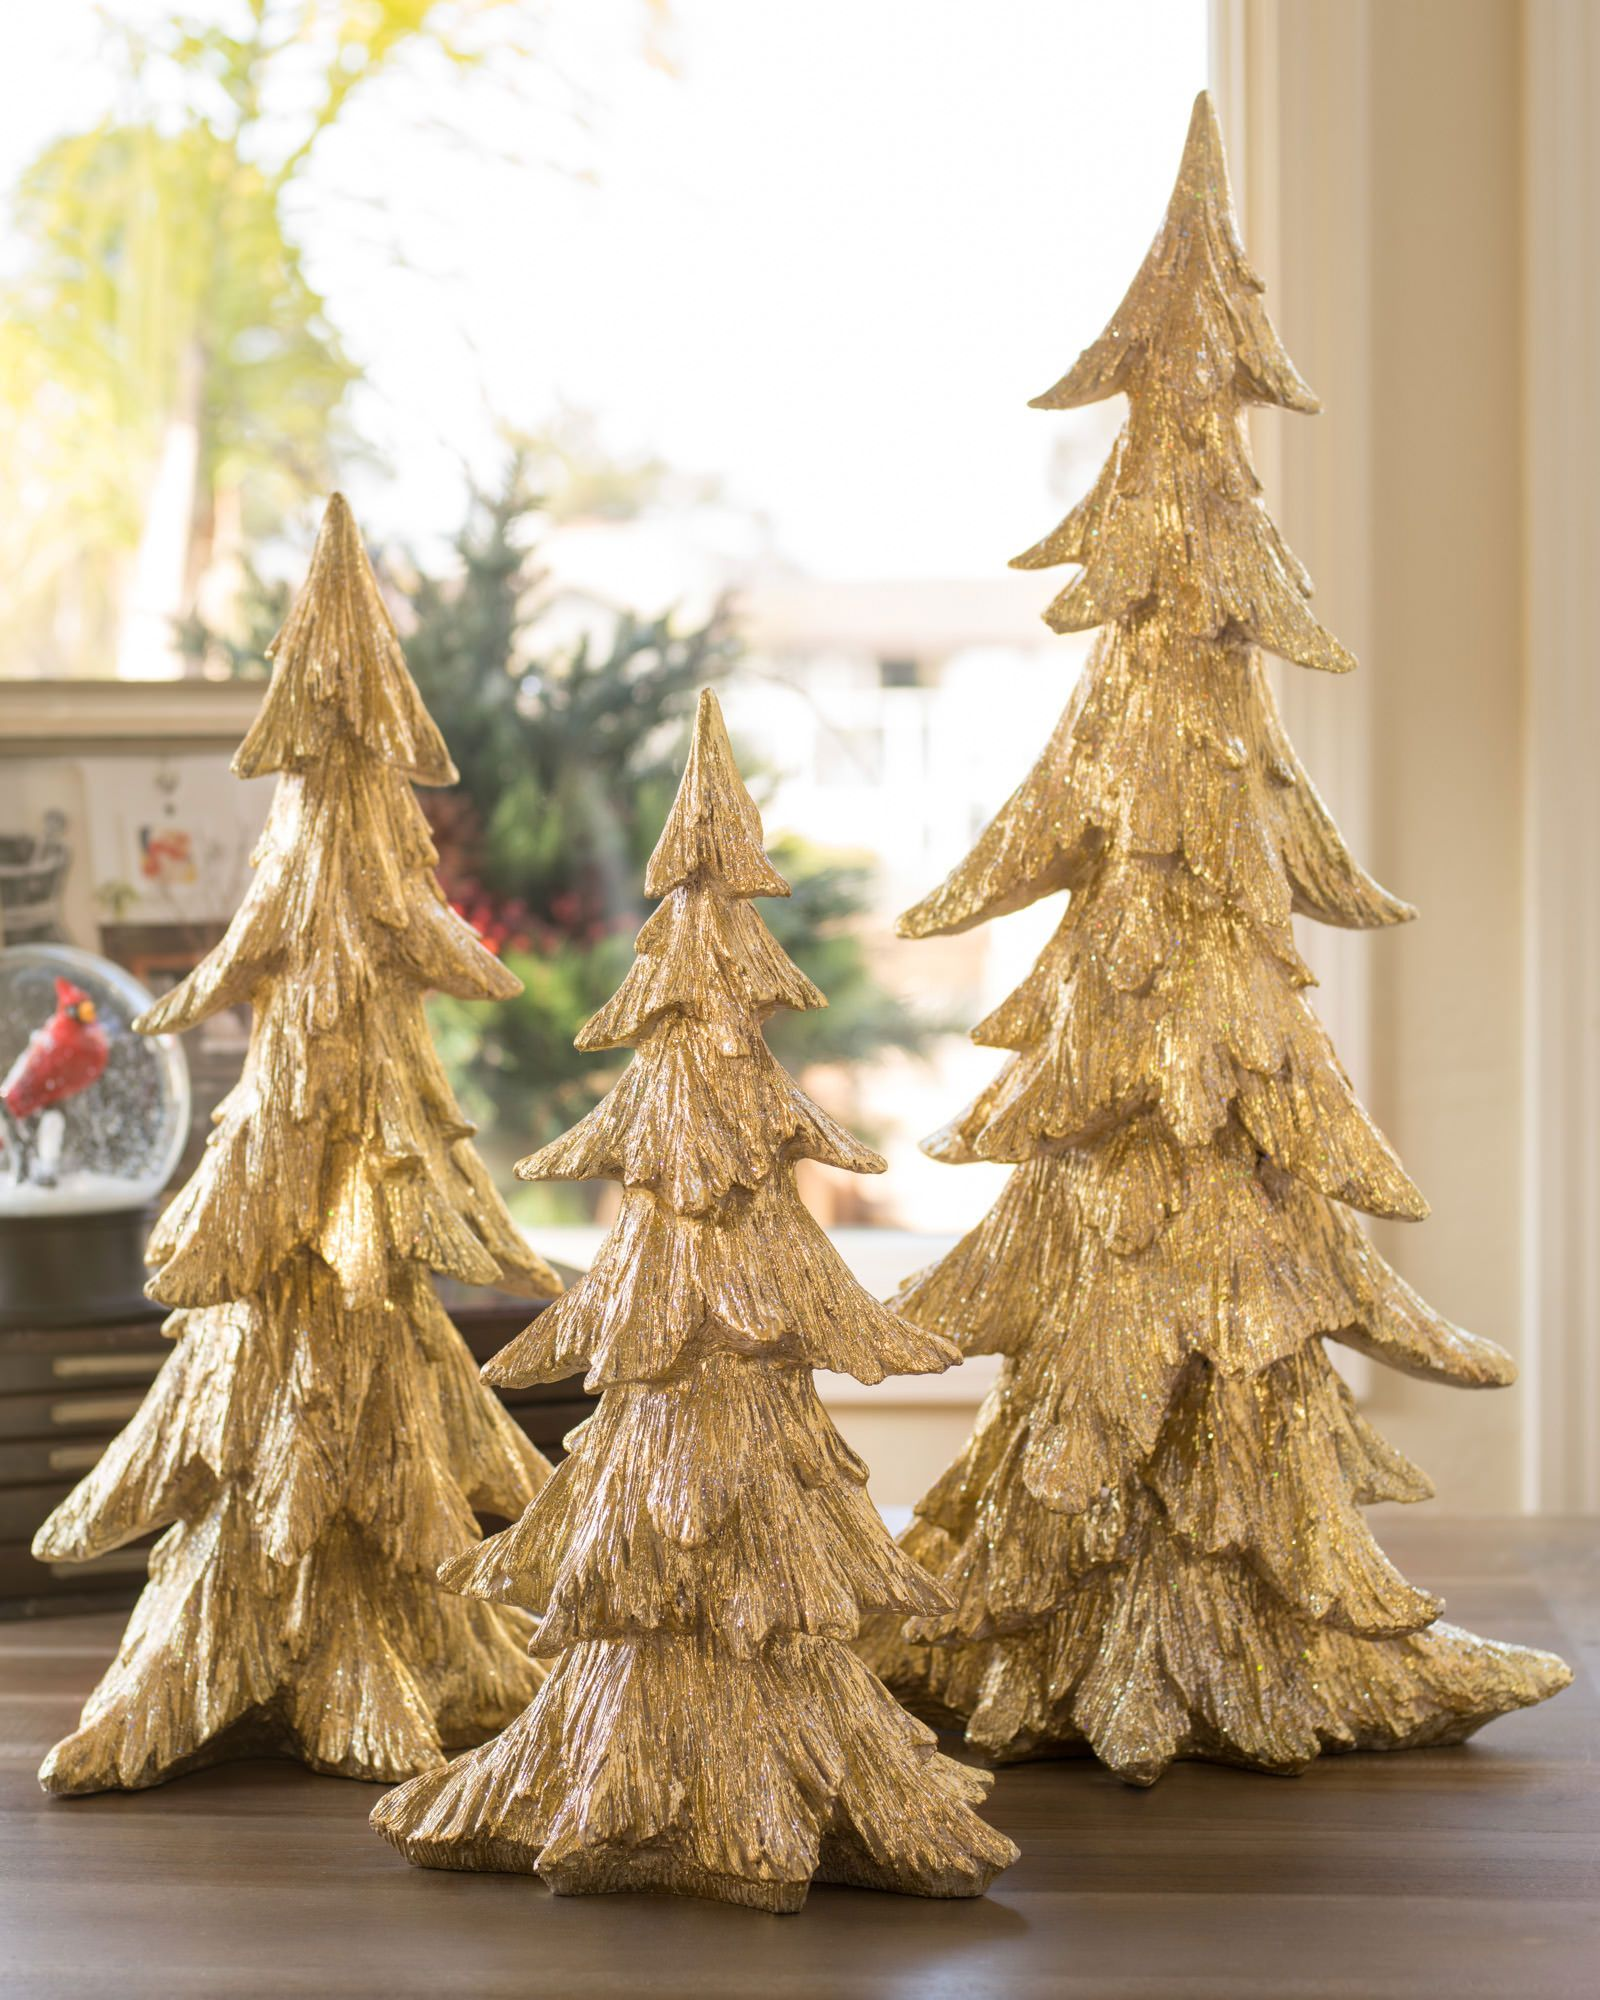 Attractive Christmas Tree Tabletop Part - 4: Golden Christmas Tabletop Trees, Set Of 3 Main